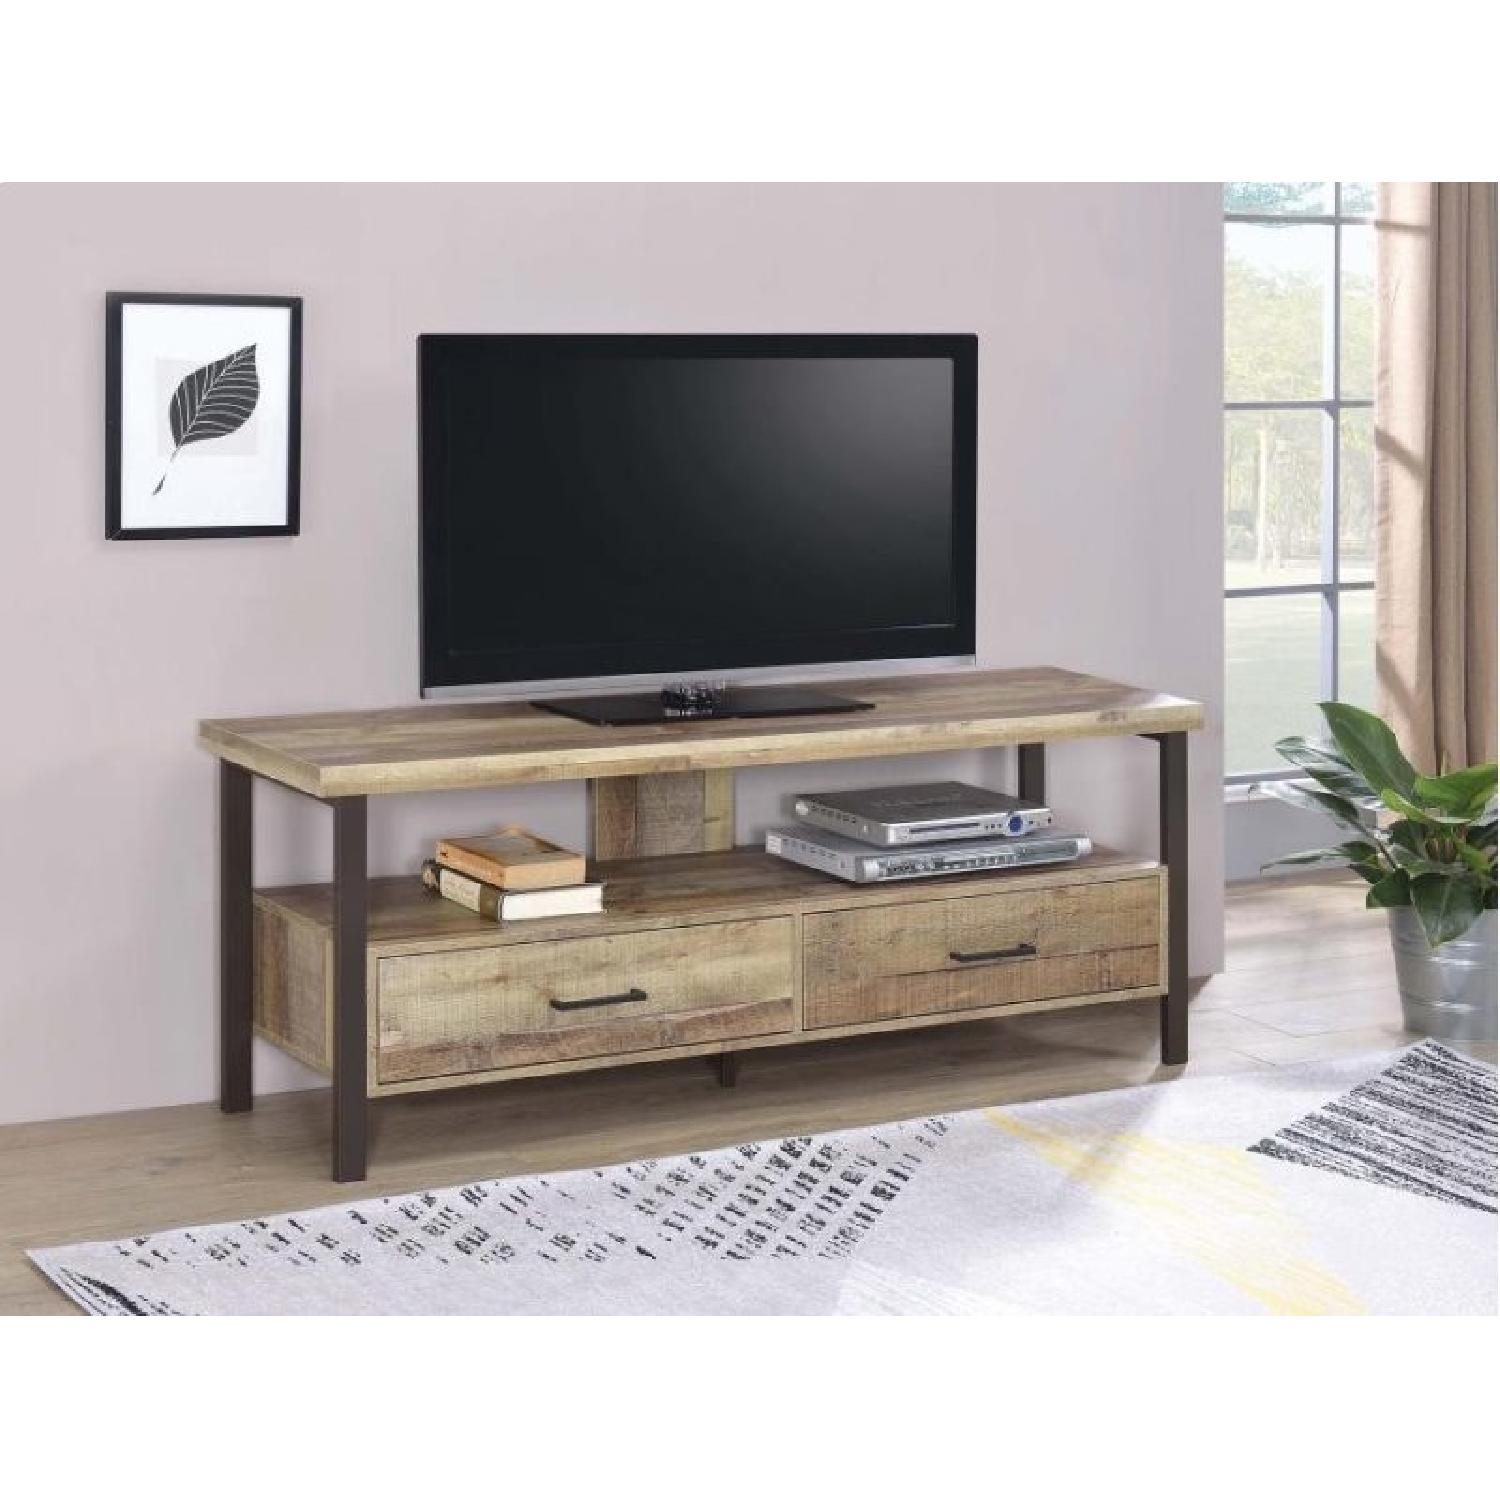 Weathered Pine TV Console w/ 2 Drawers-1